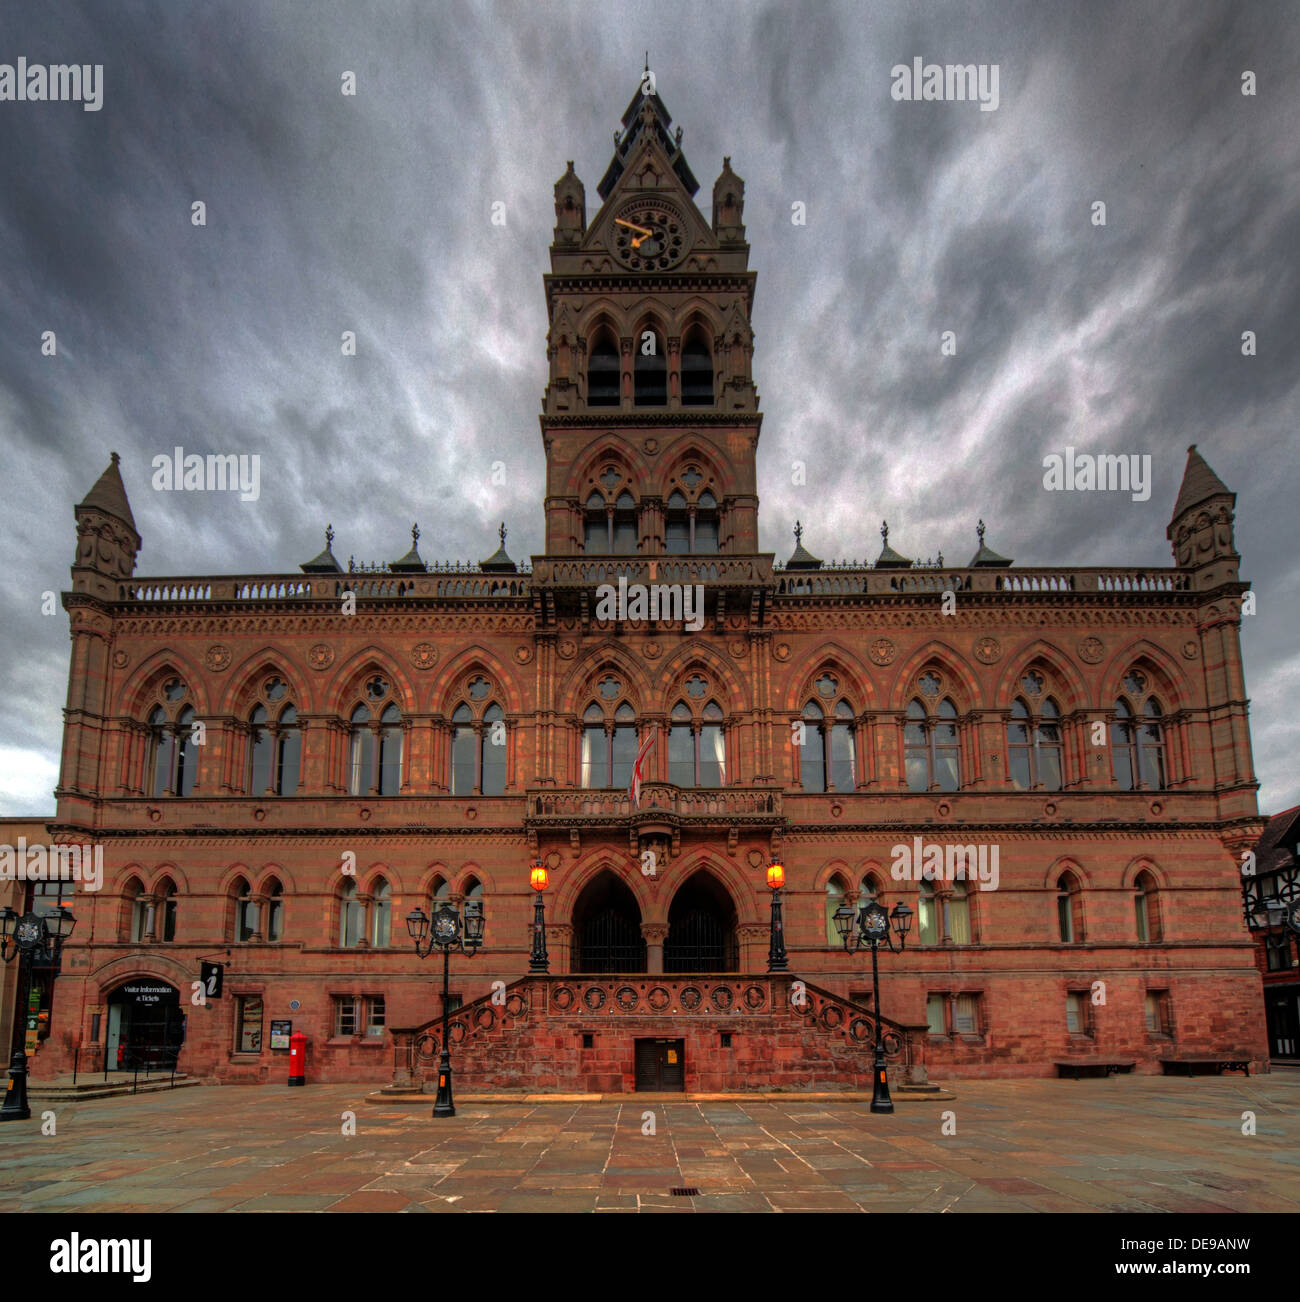 Chester City Town Hall with dramatic gray sky, Cheshire, England, UK - Stock Image